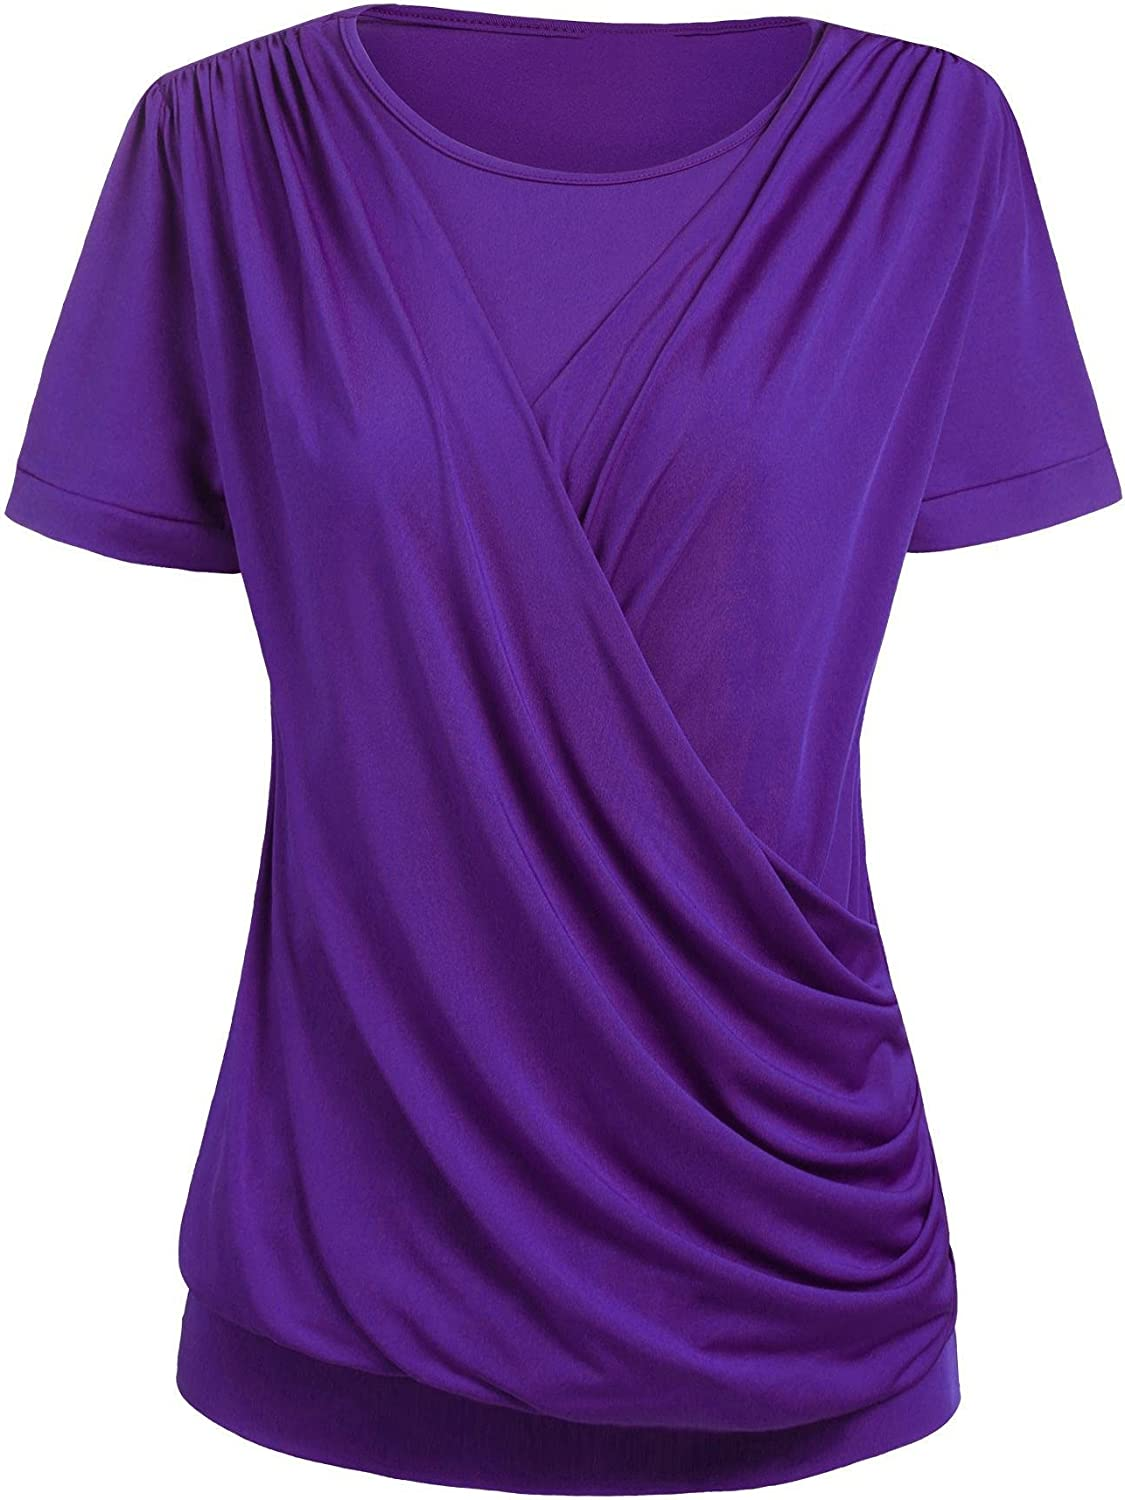 SoTeer Womens Short Sleeve Crewneck Front Pleated Dressy Tunic Tops Purple